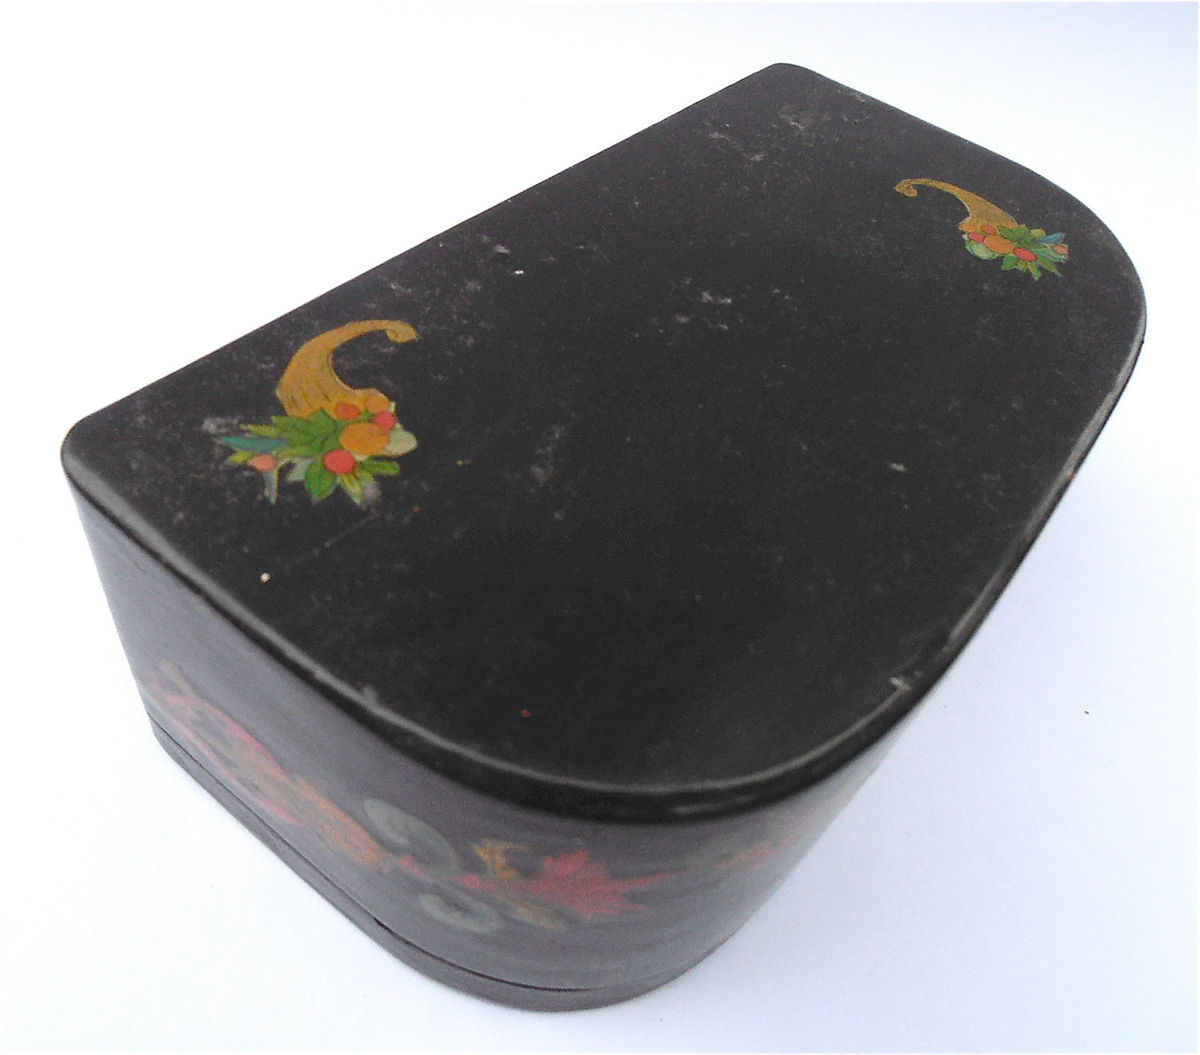 Vintage Decoupage Black Box Gentleman Wood Container Paper Ephemera Wooden Courting Scene Jewelry Serenading French Souvenir Half Moon - product images  of